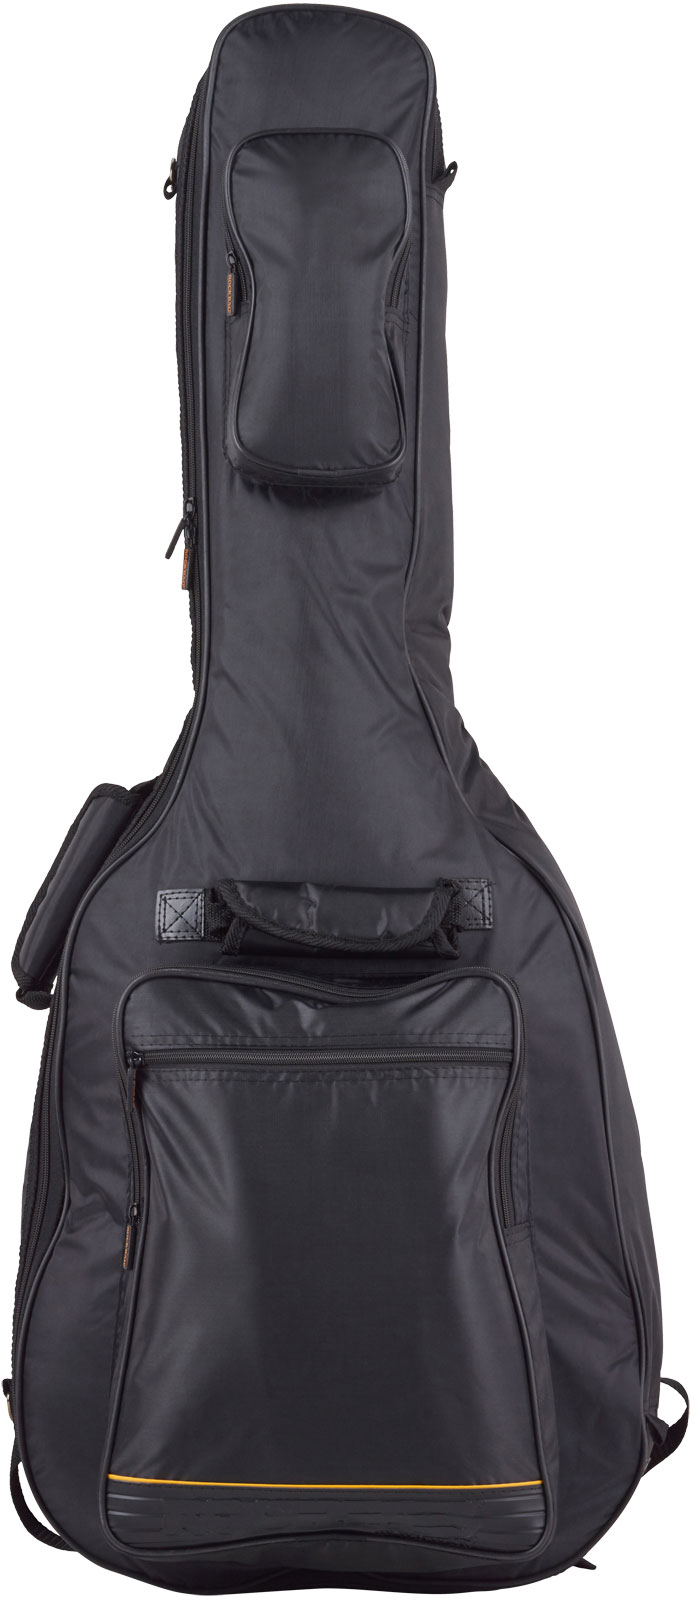 DELUXE LINE - HOLLOW BODY GUITAR CASE